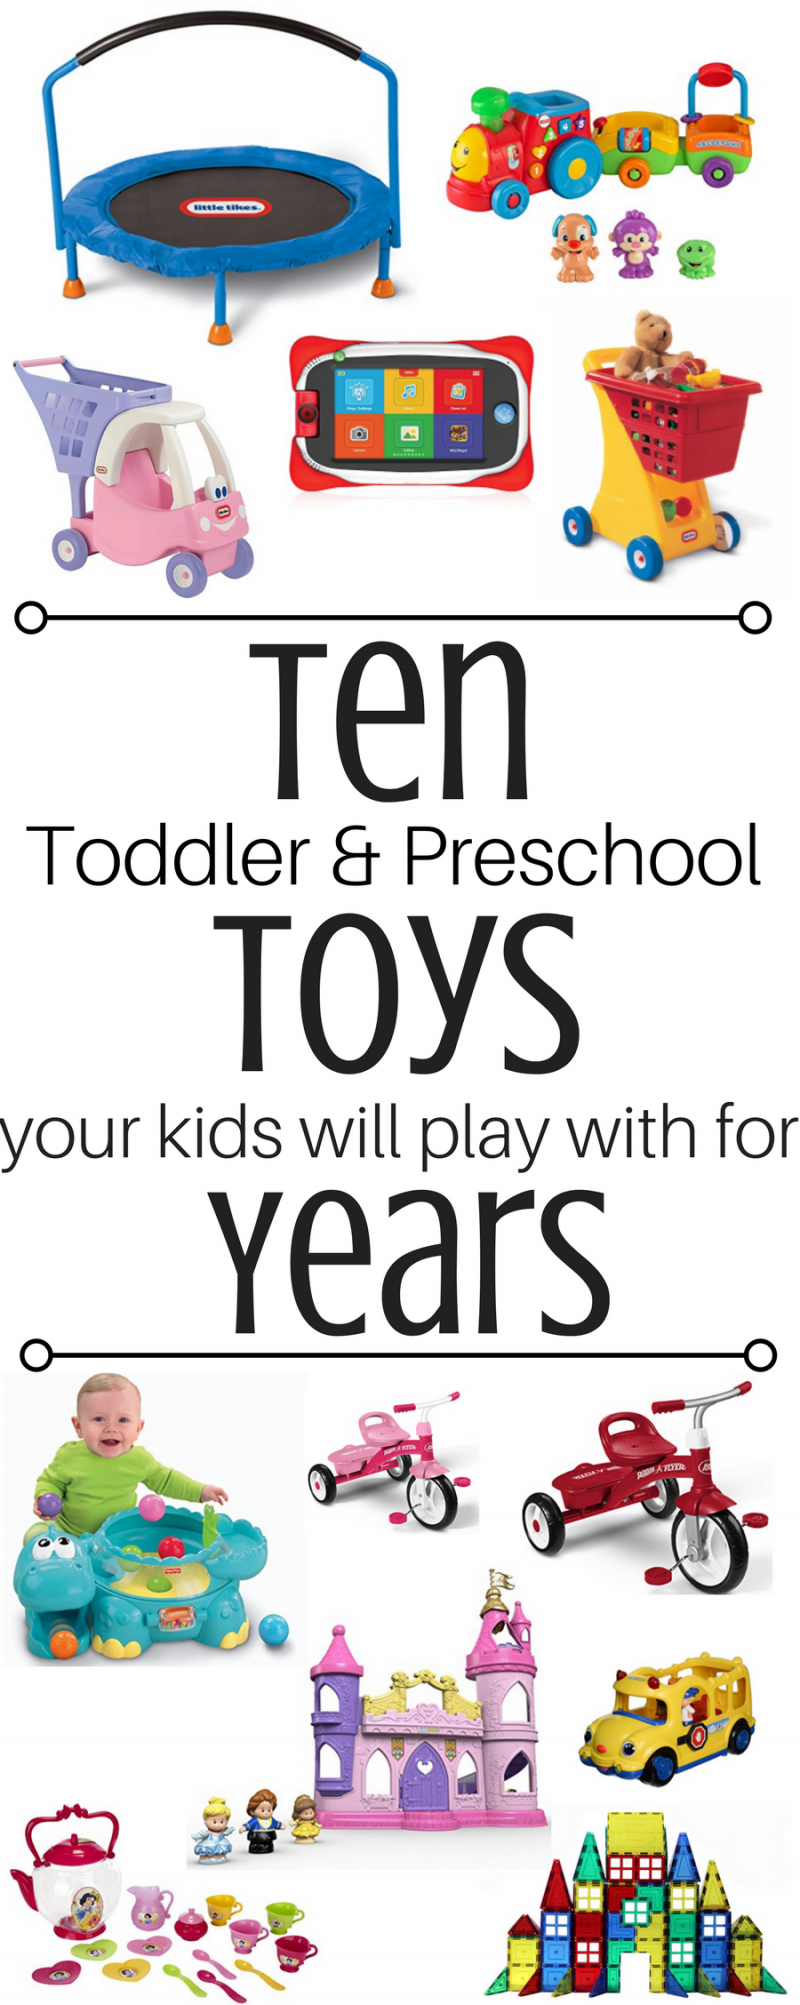 Ten Toddler & Preschool Toys Your Kids will Play with for Years